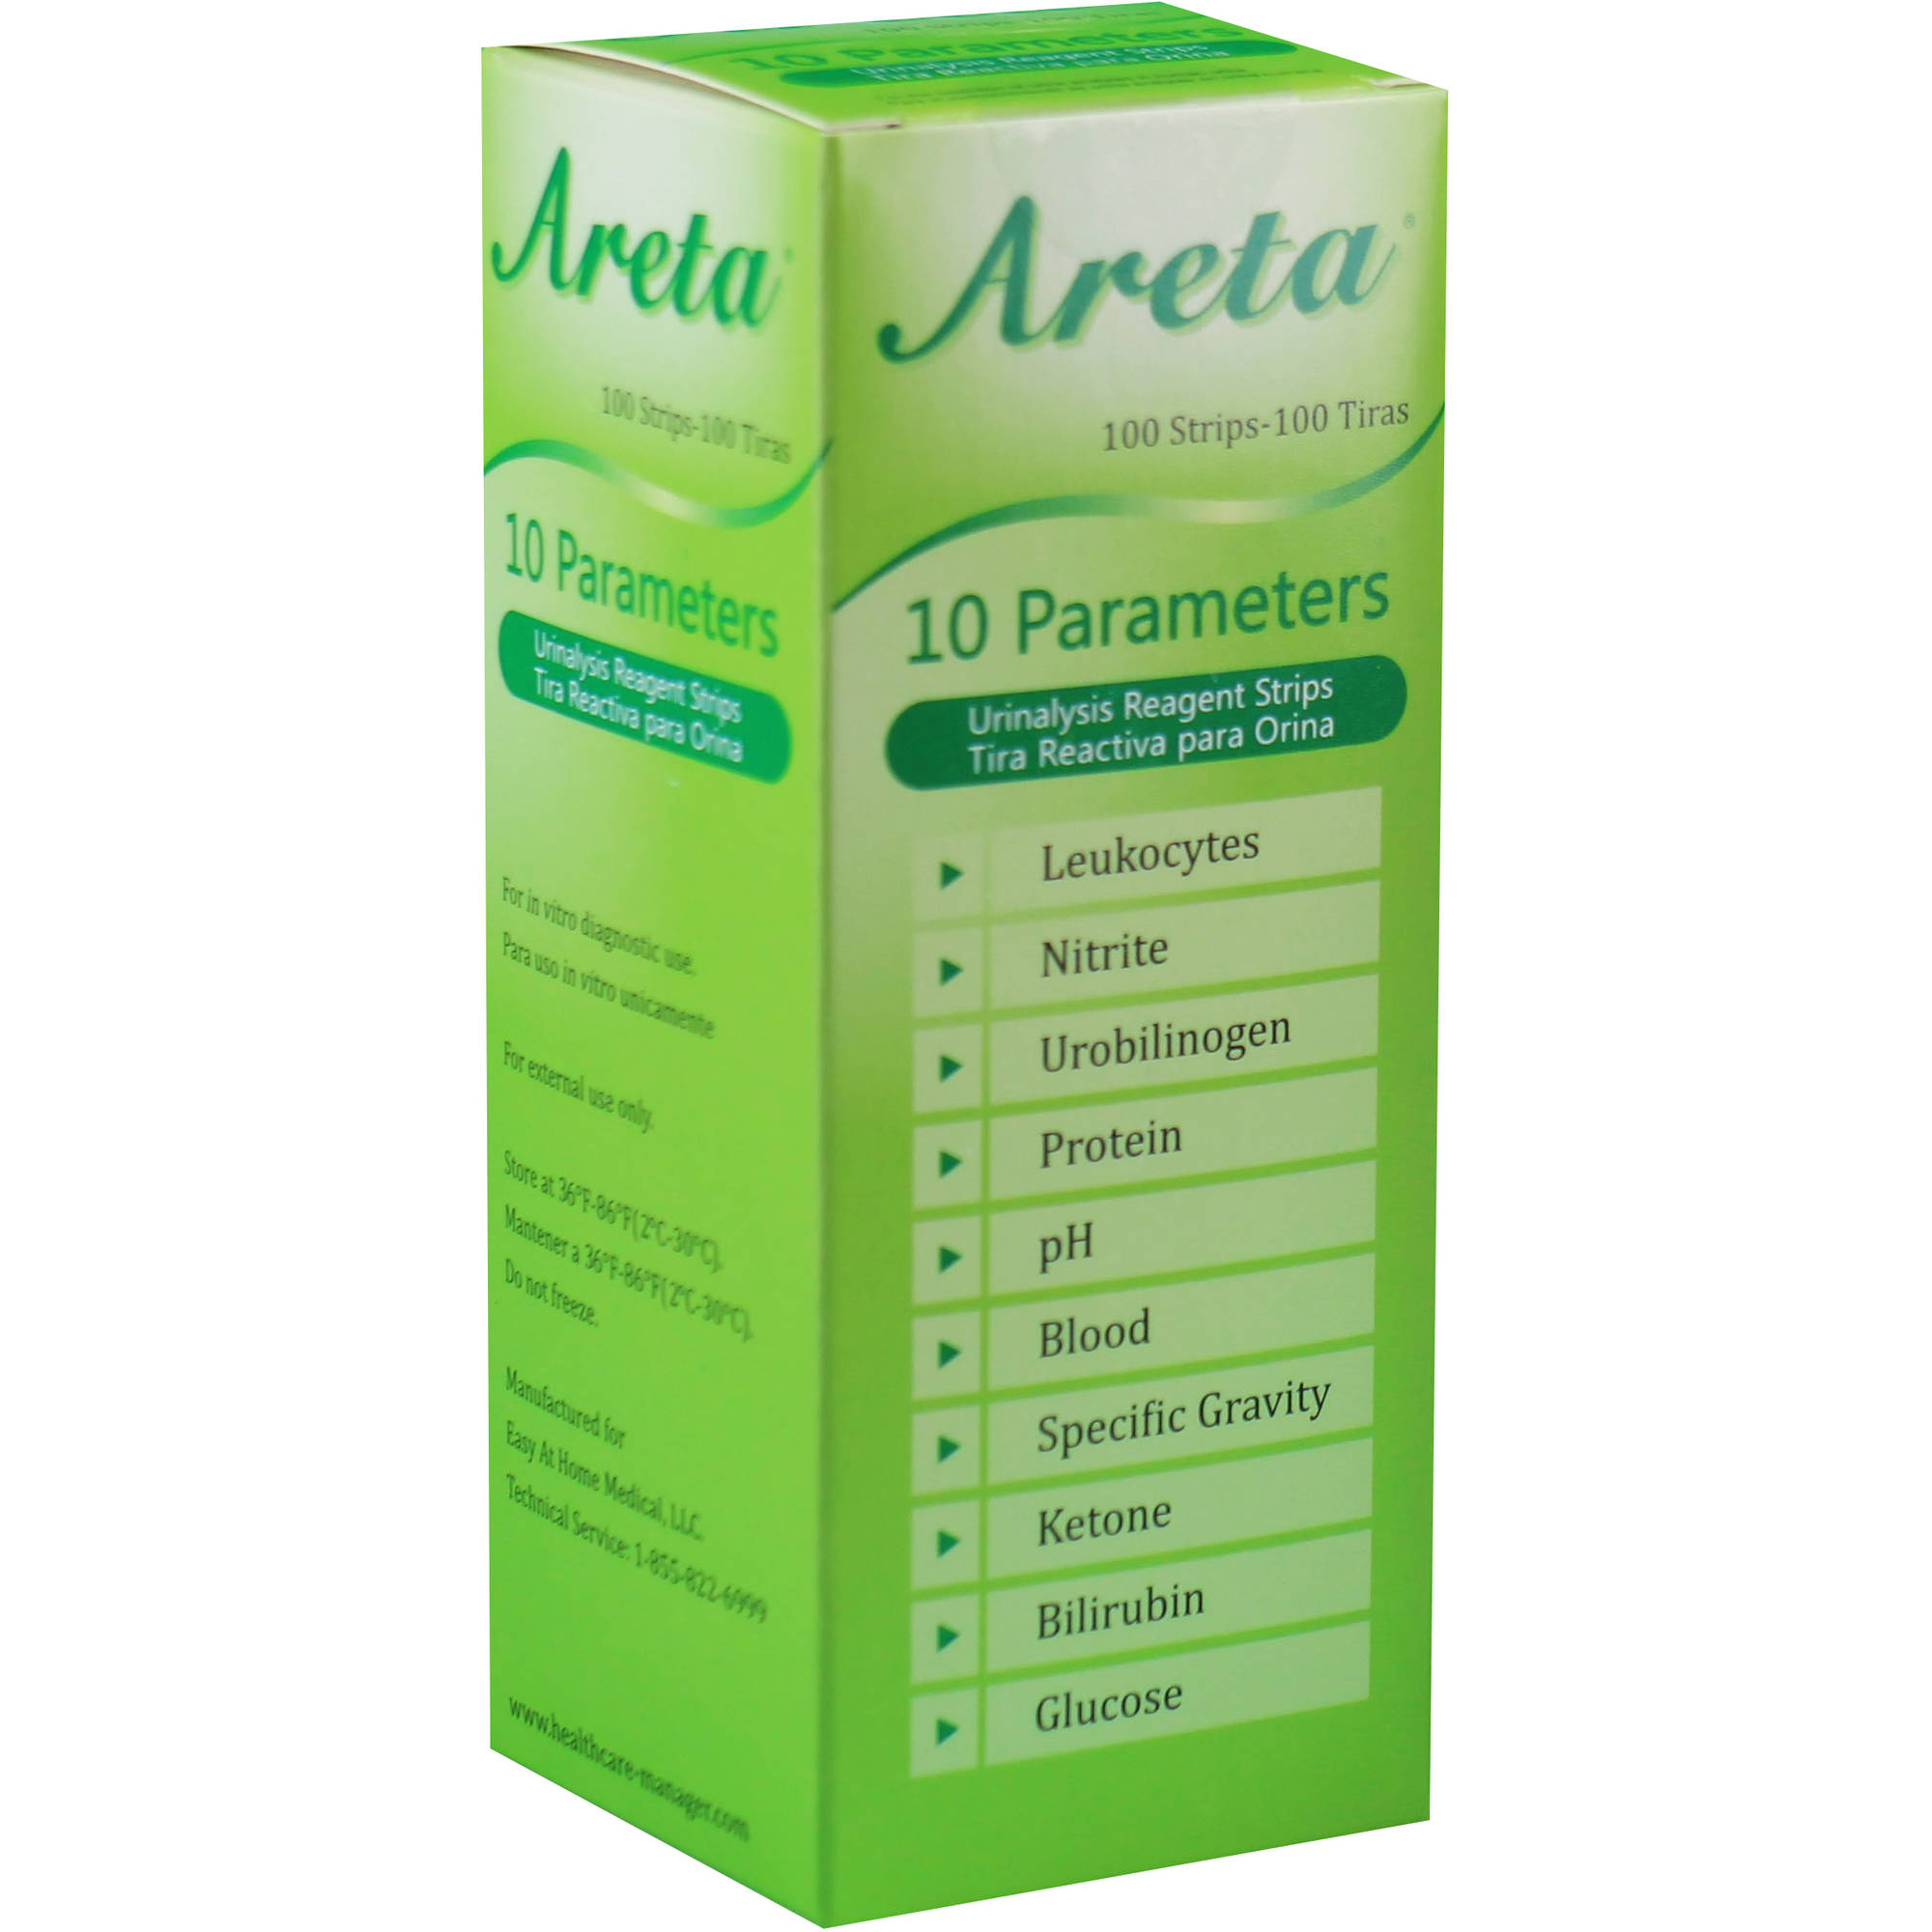 Areta 10 Parameter Urinalysis Reagent Test Strips, 100 Ct